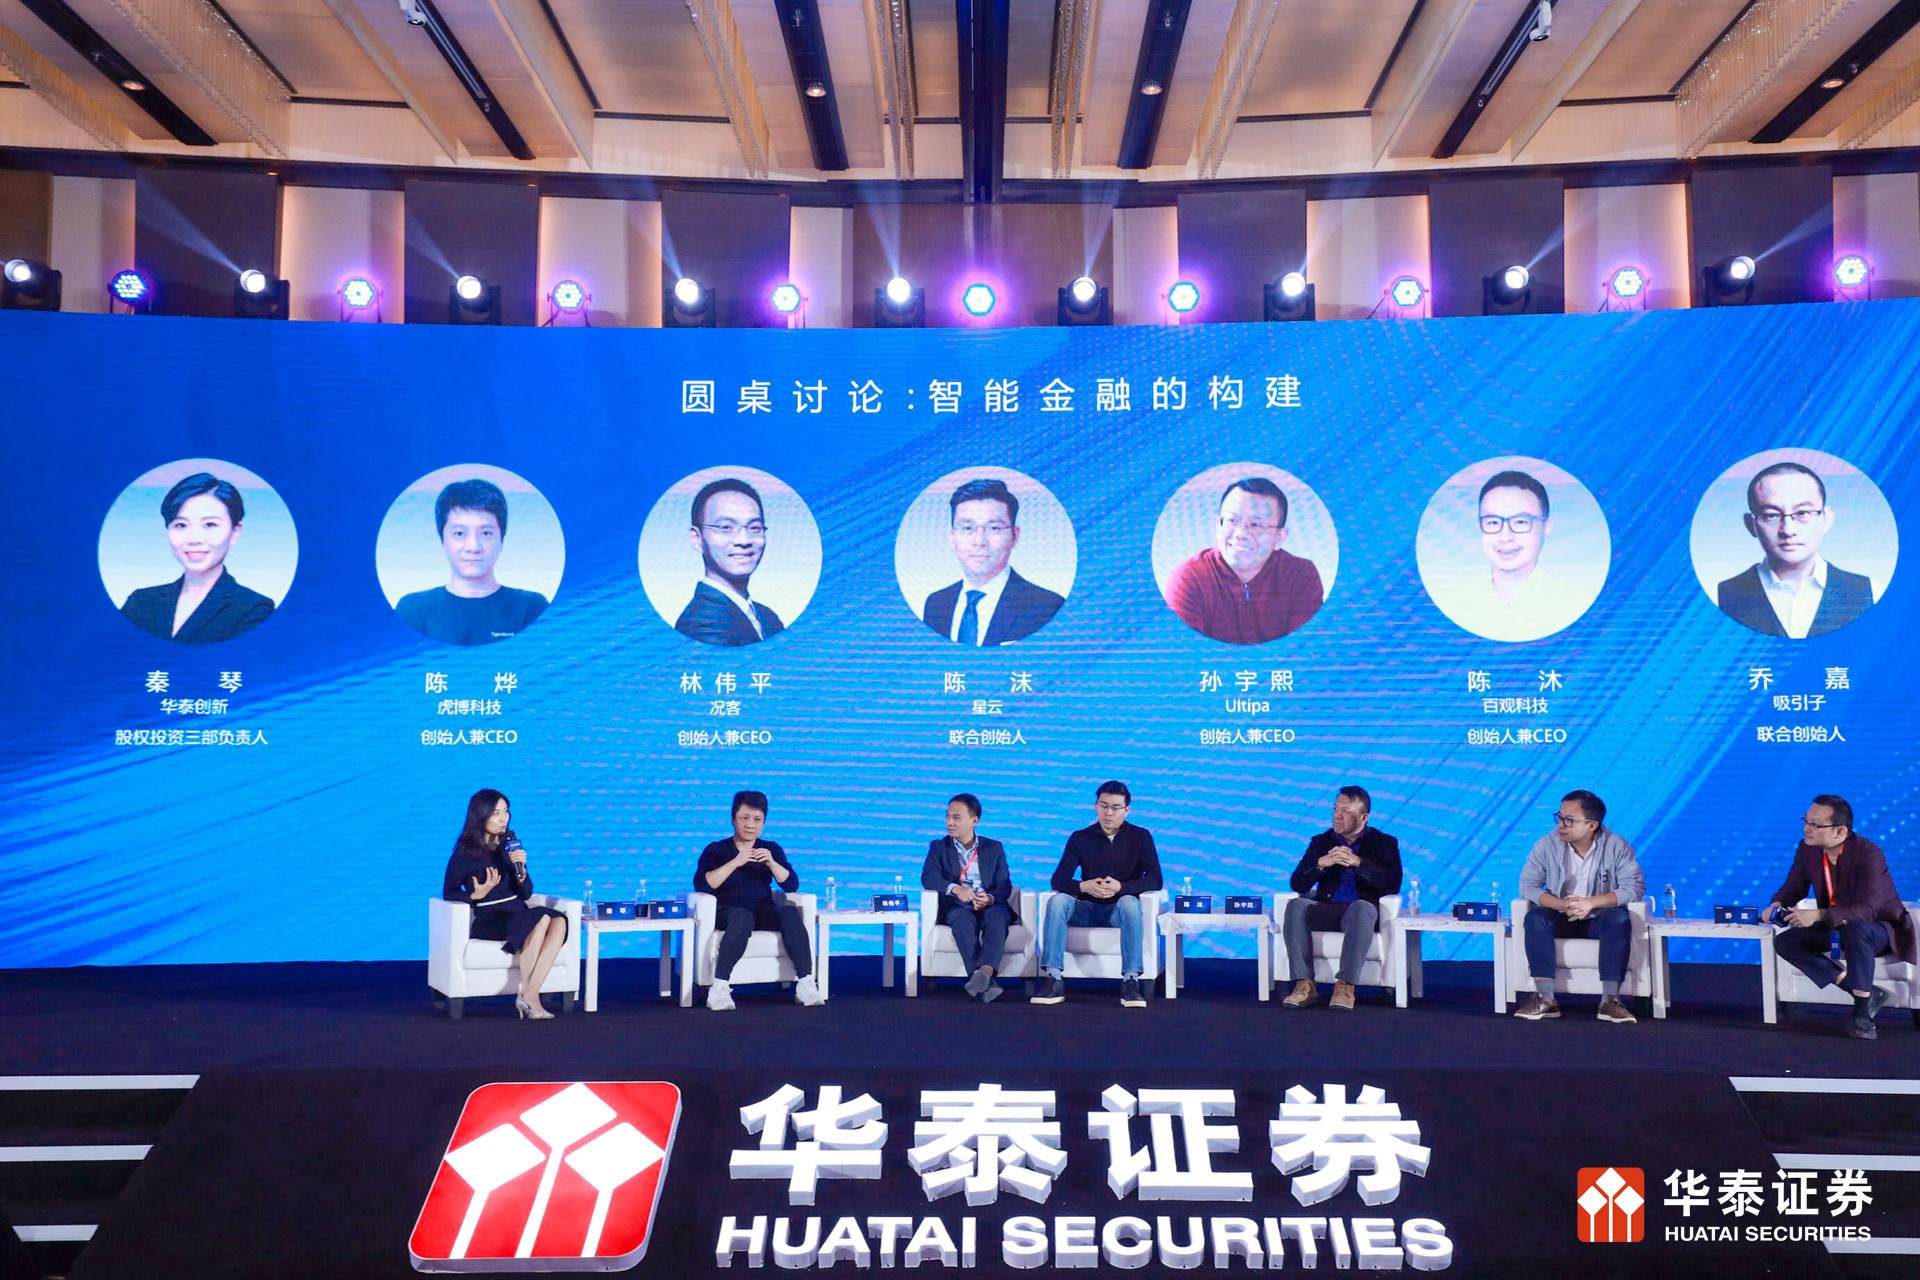 CEO Attends Financial Summit and Ultipa Injects New Momentum into Fintech - Ultipa Graph